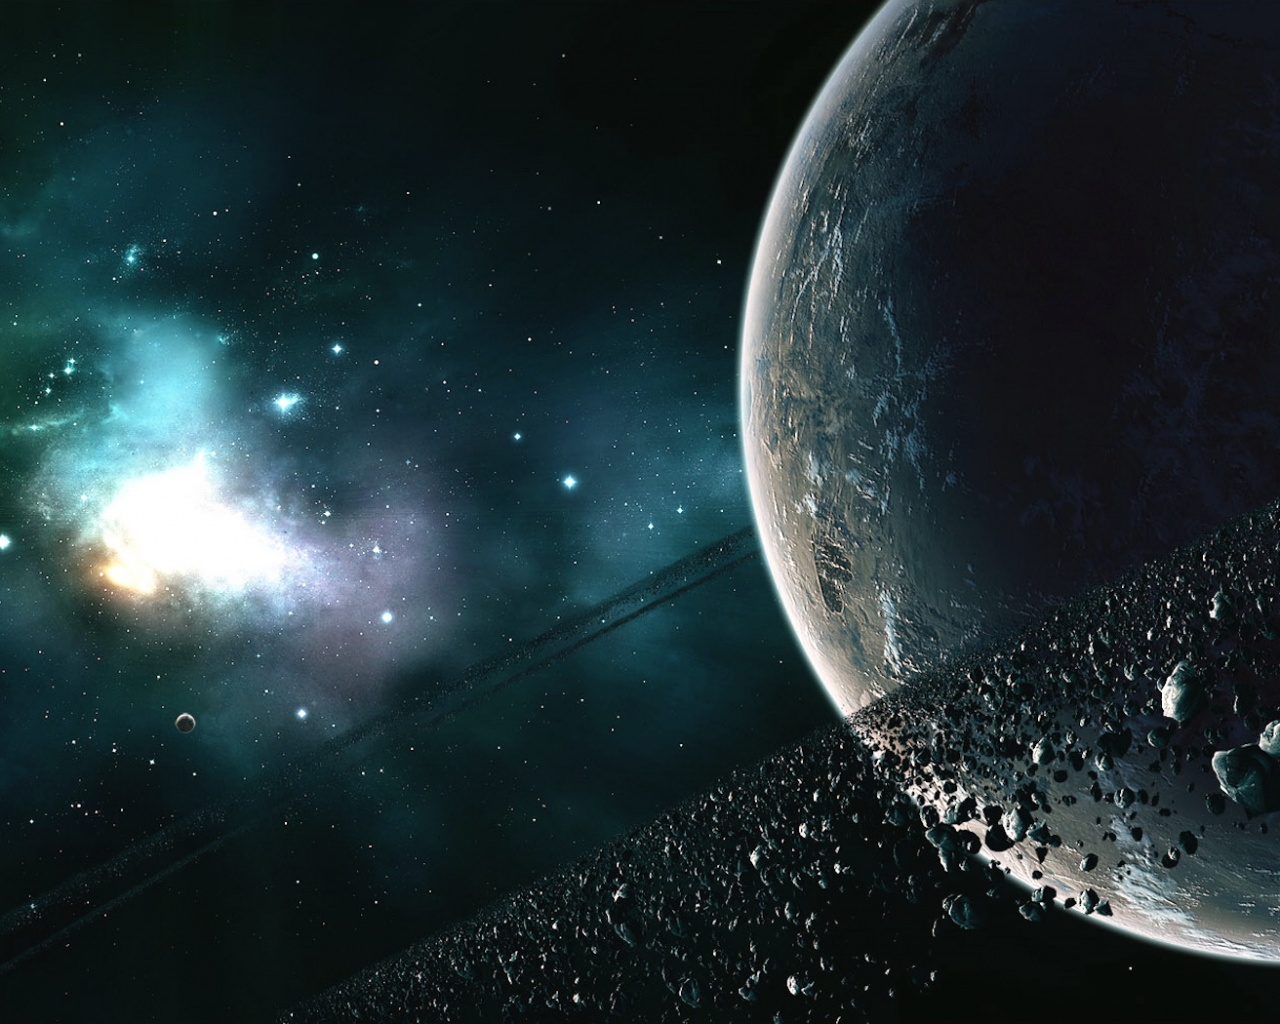 The ring of asteroids desktop wallpapers Download